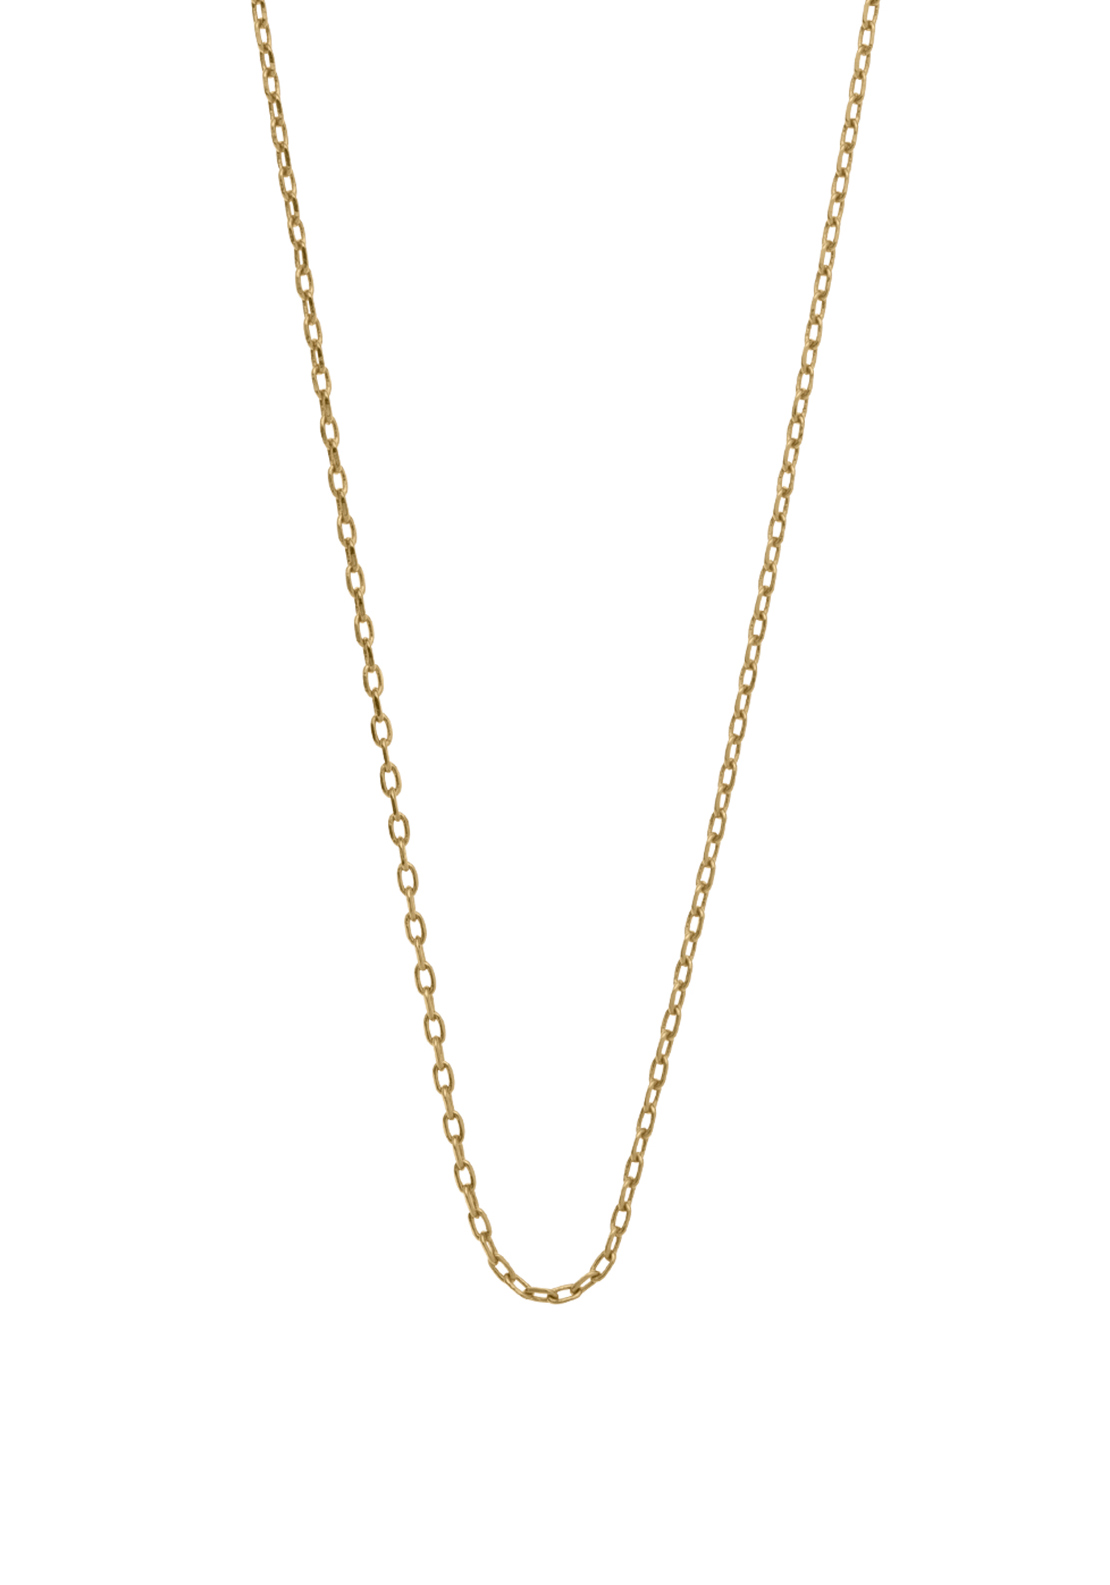 "Kirstin Ash Link Chain 18-20"", Gold Plated"